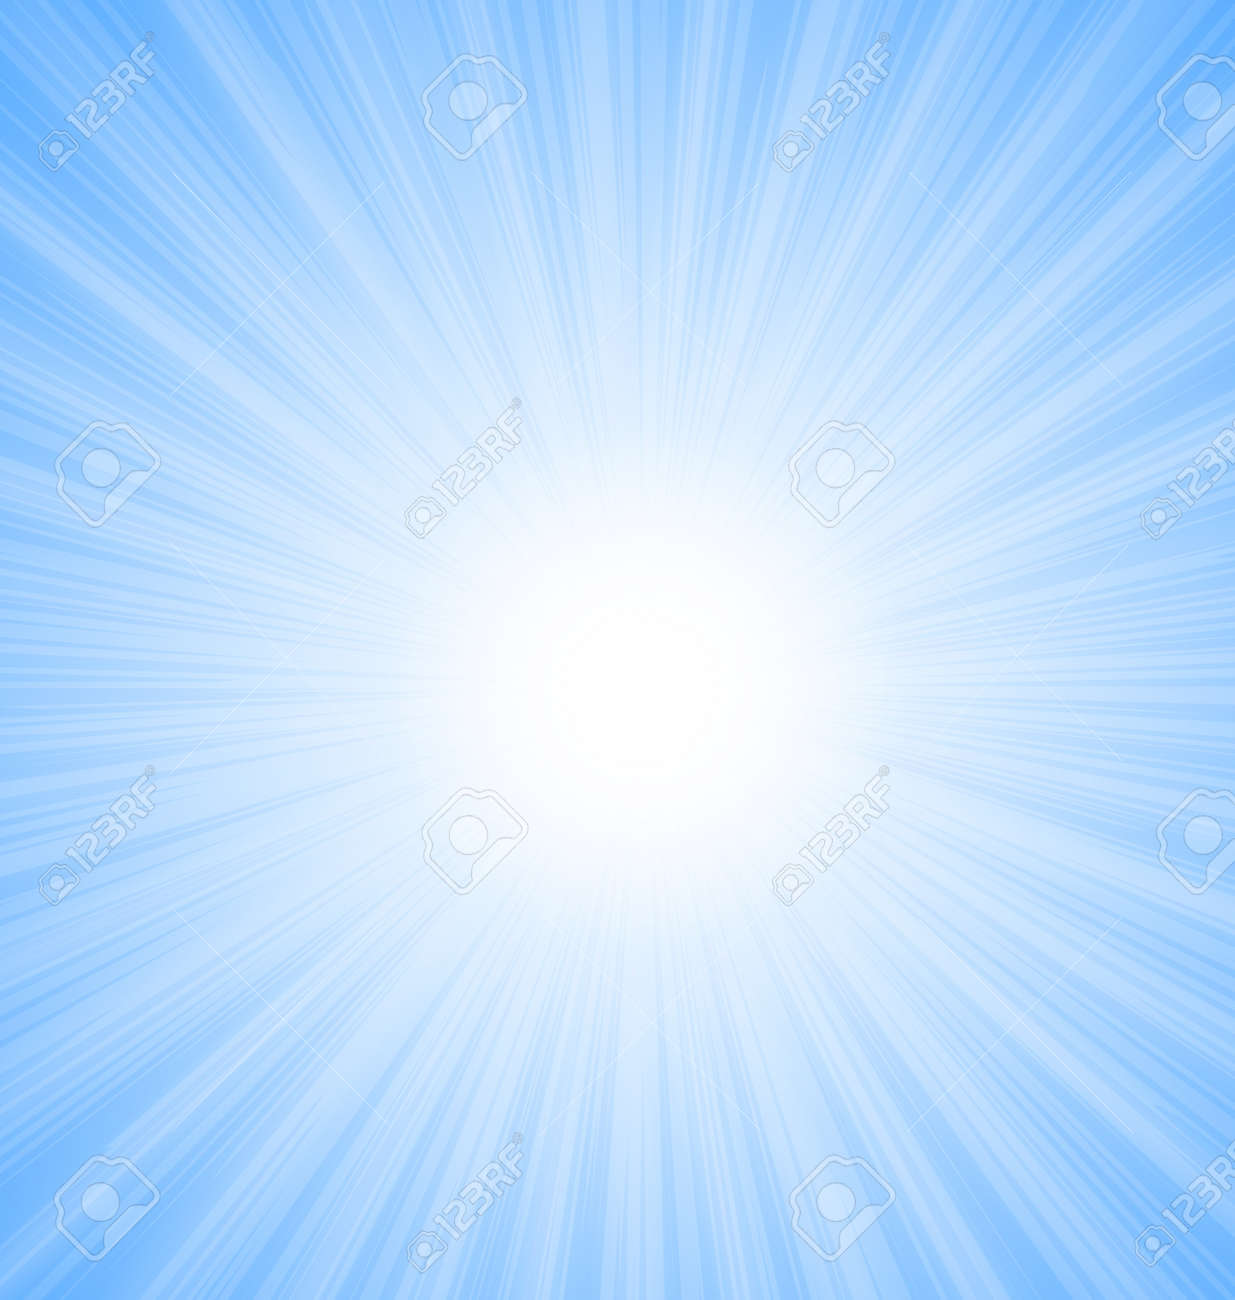 Abstract Blue Light Ray Stock Footage Video 4179251 | Shutterstock